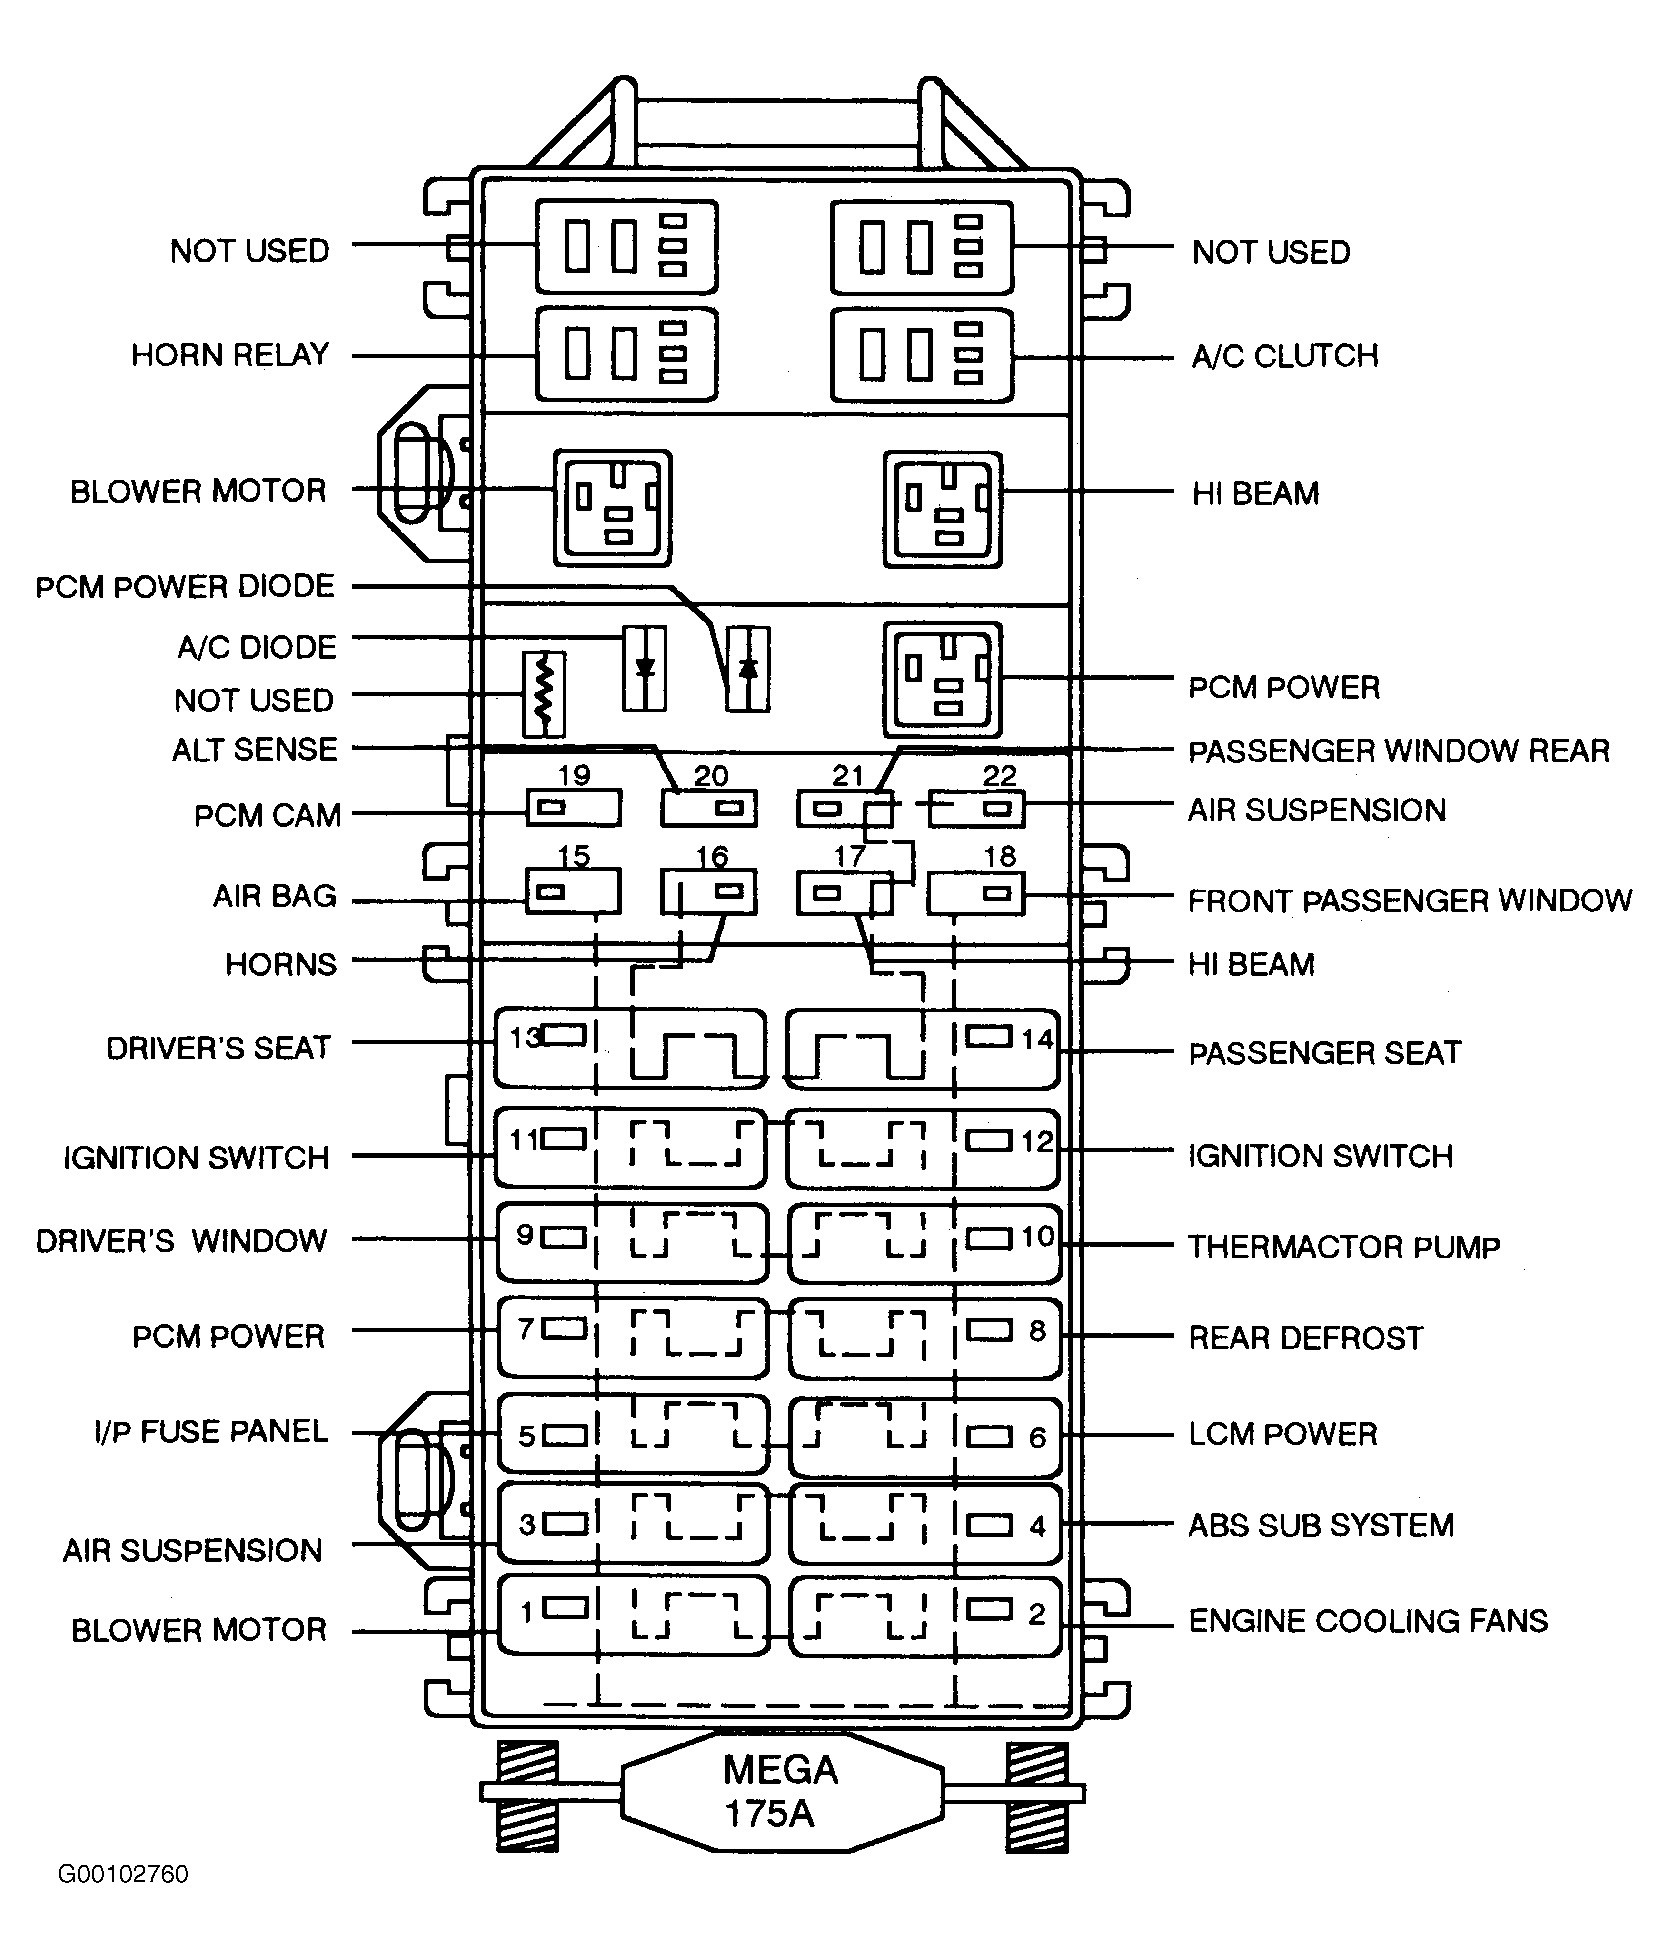 fuse breaker diagram